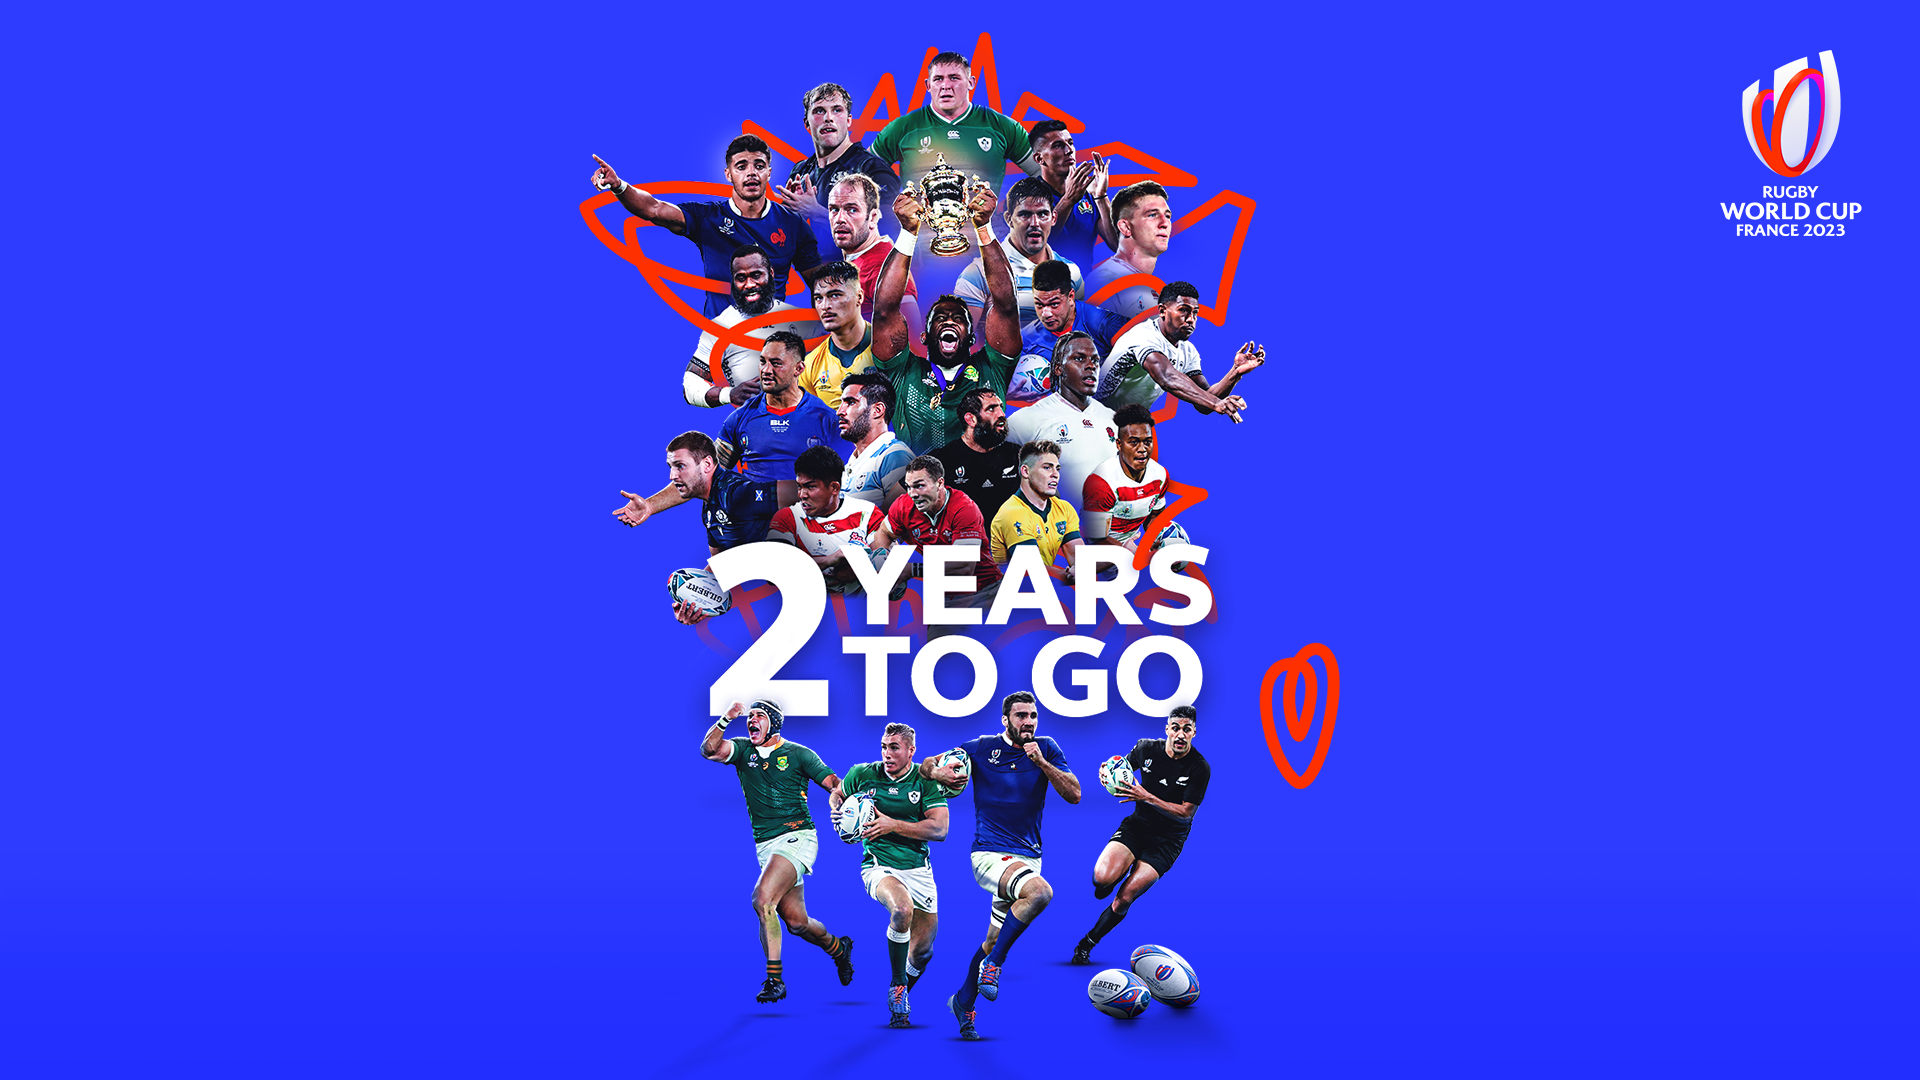 RWC France 2023 2 years to go graphic